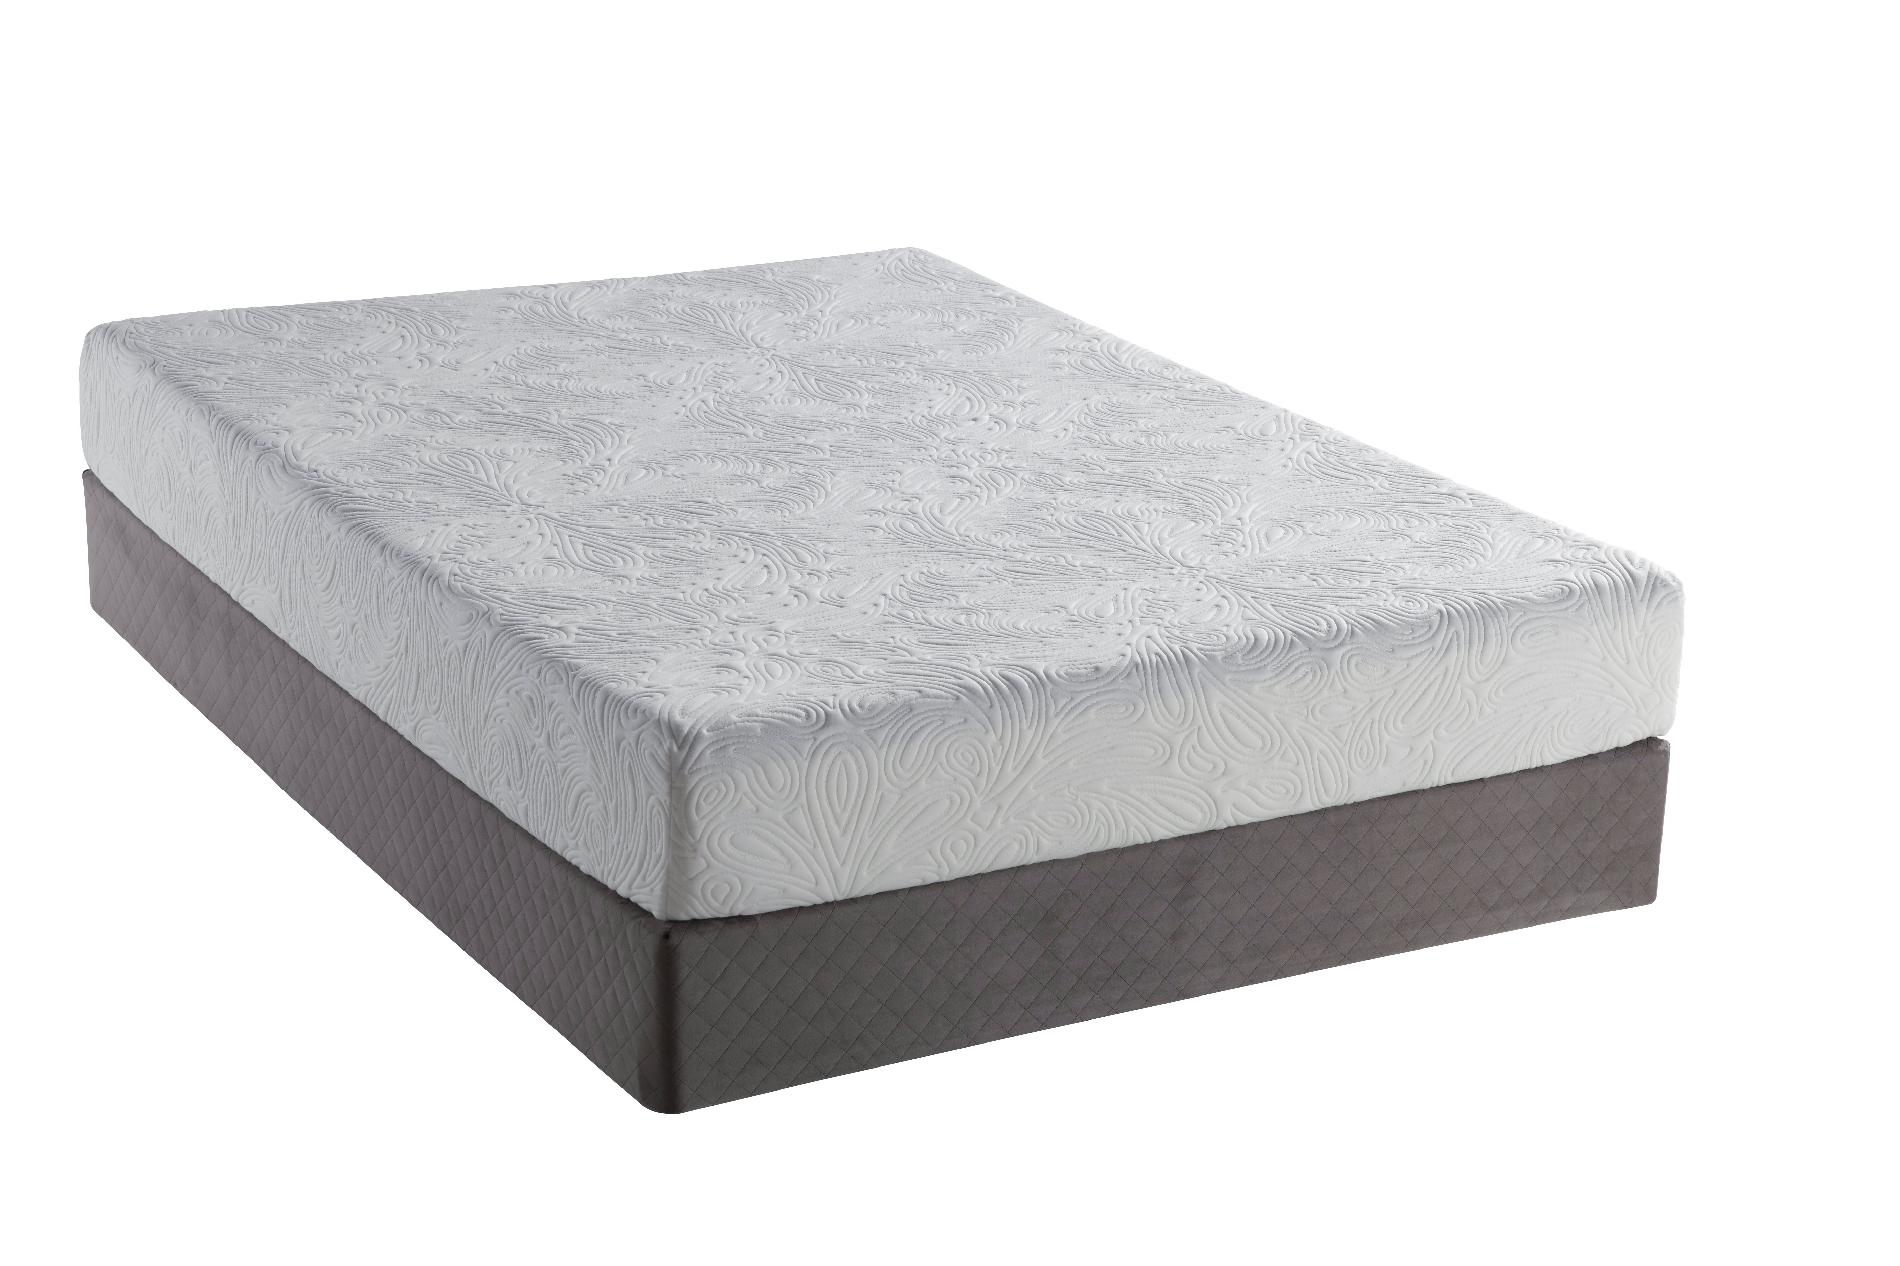 Sealy Posturepedic Optimum Destiny, Firm, California King Mattress Only